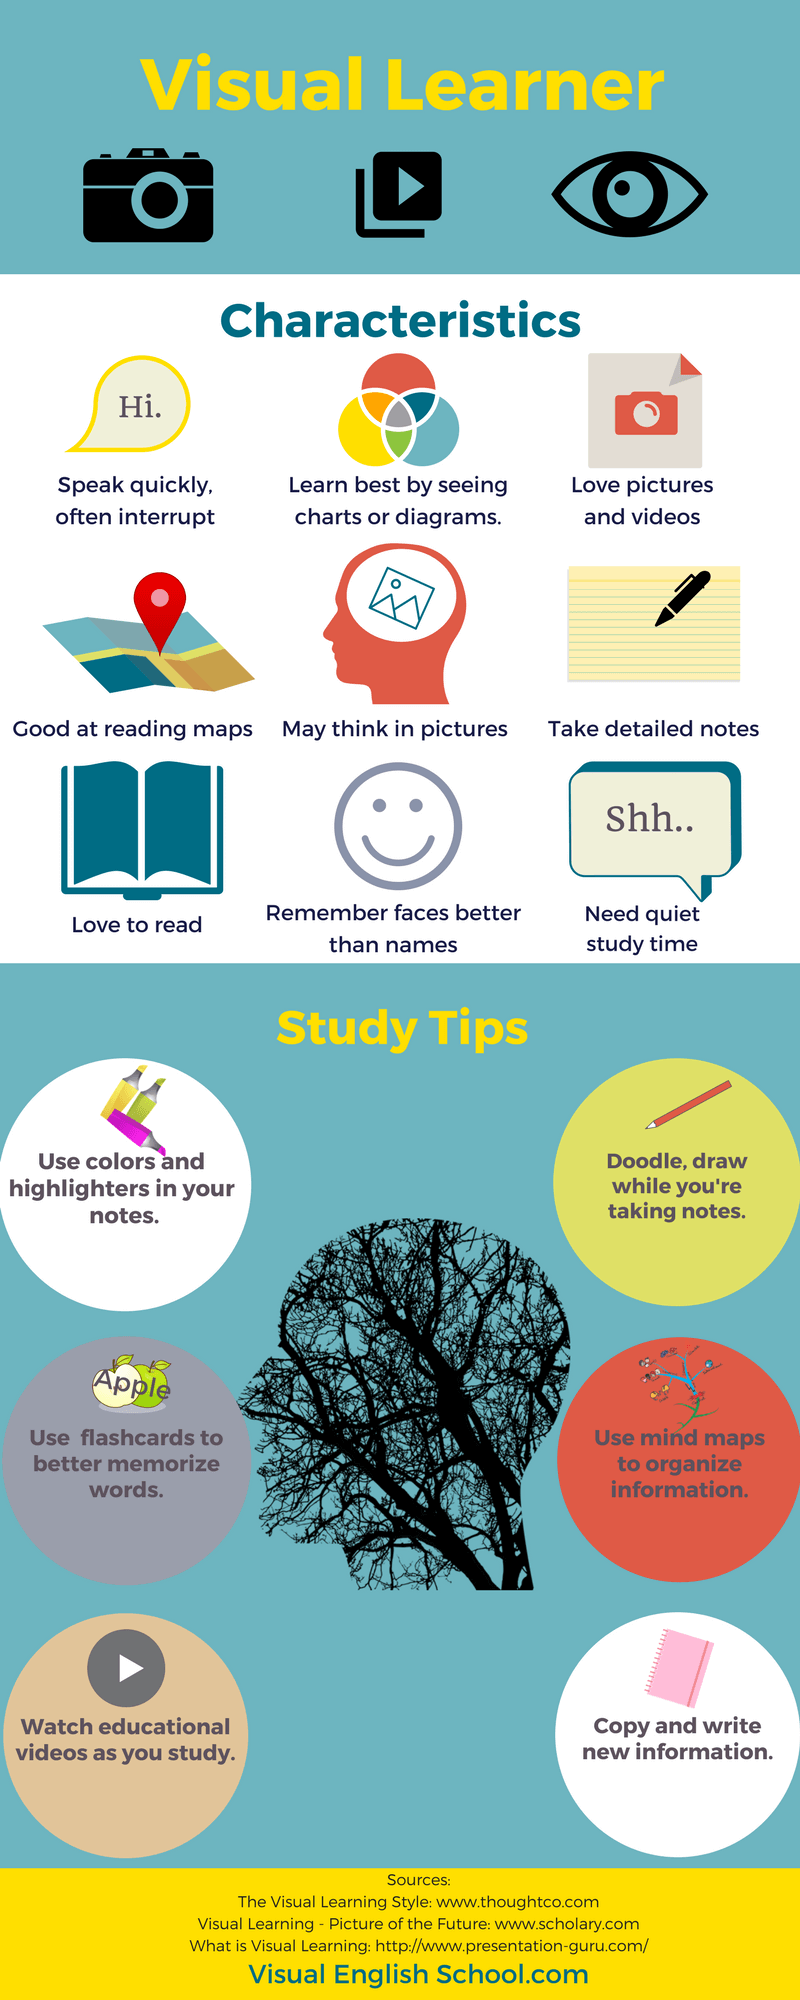 Who are visual learners? Infographic about visual learners'characteristics and study tips